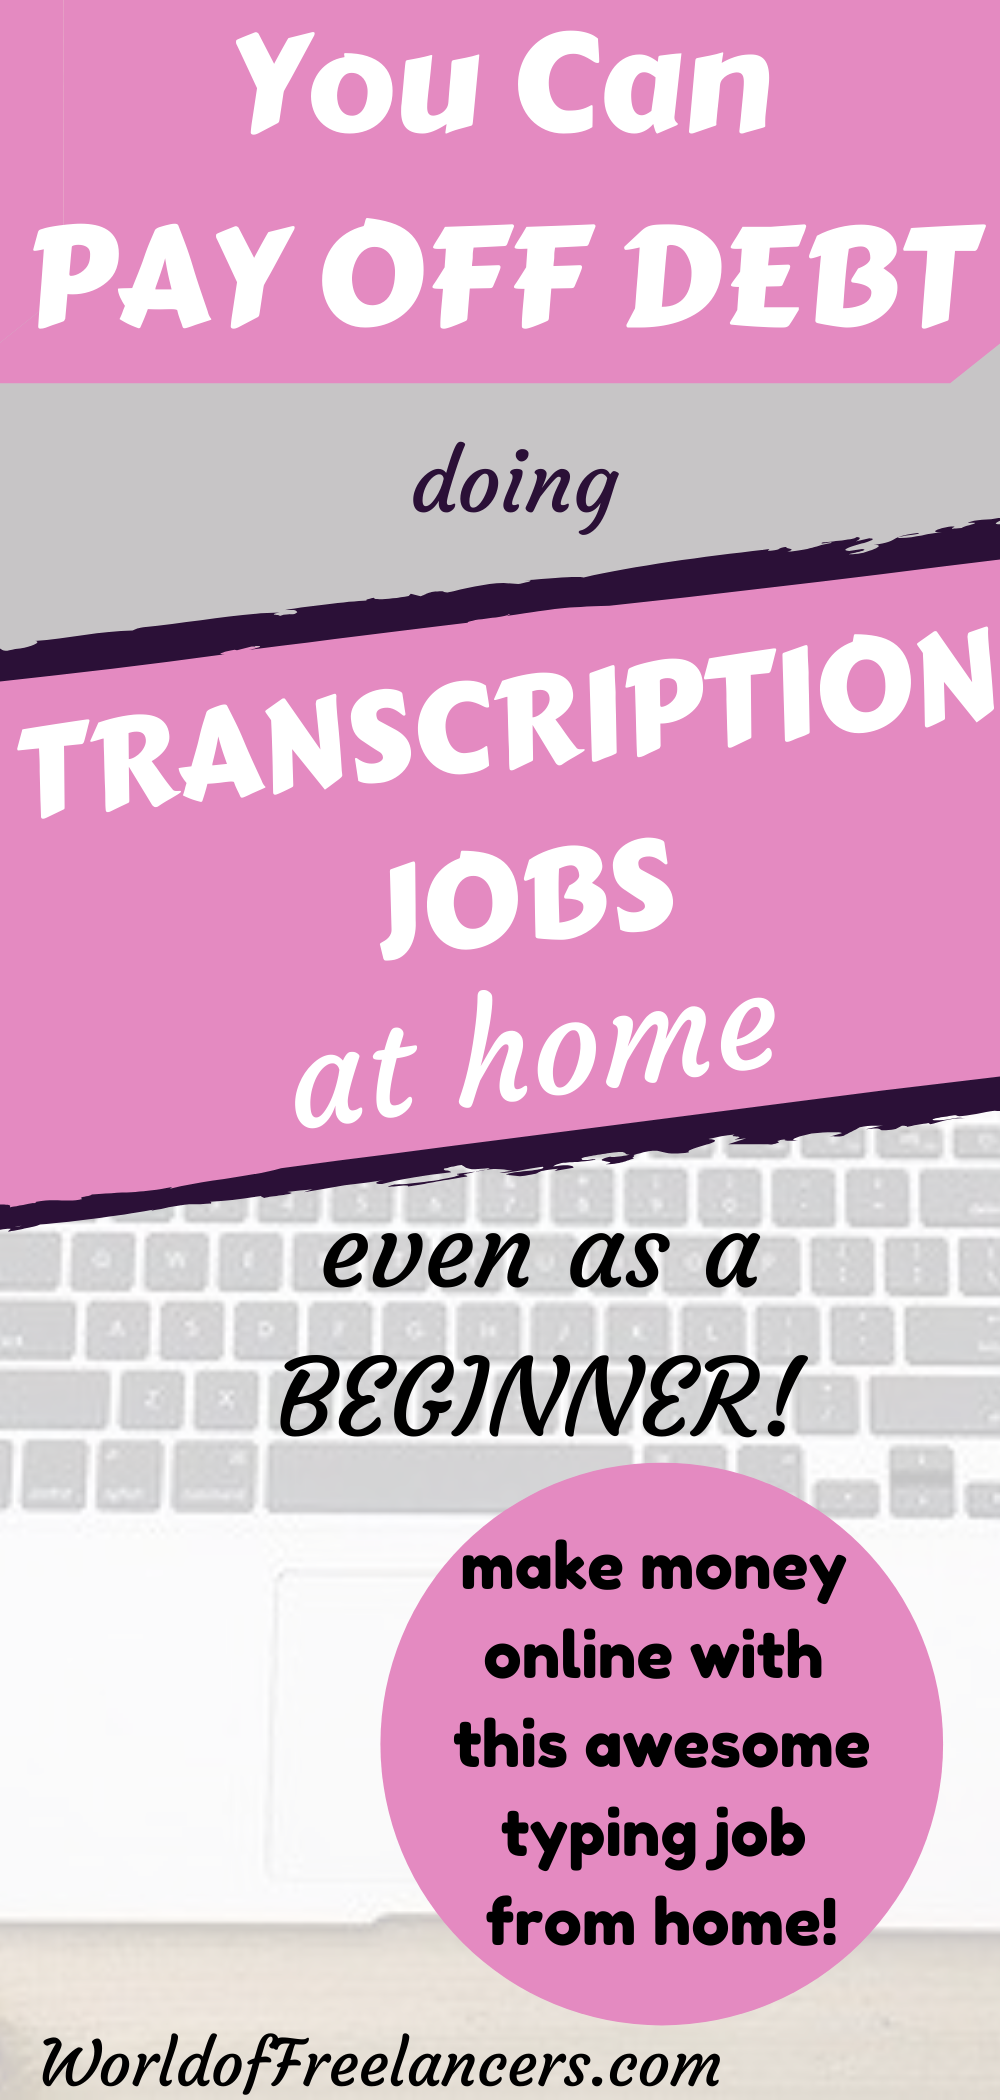 Top 12 Places Transcriptionists Get Transcription Jobs World Of Freelancers In 2020 Typing Jobs Typing Jobs From Home Transcription Jobs From Home